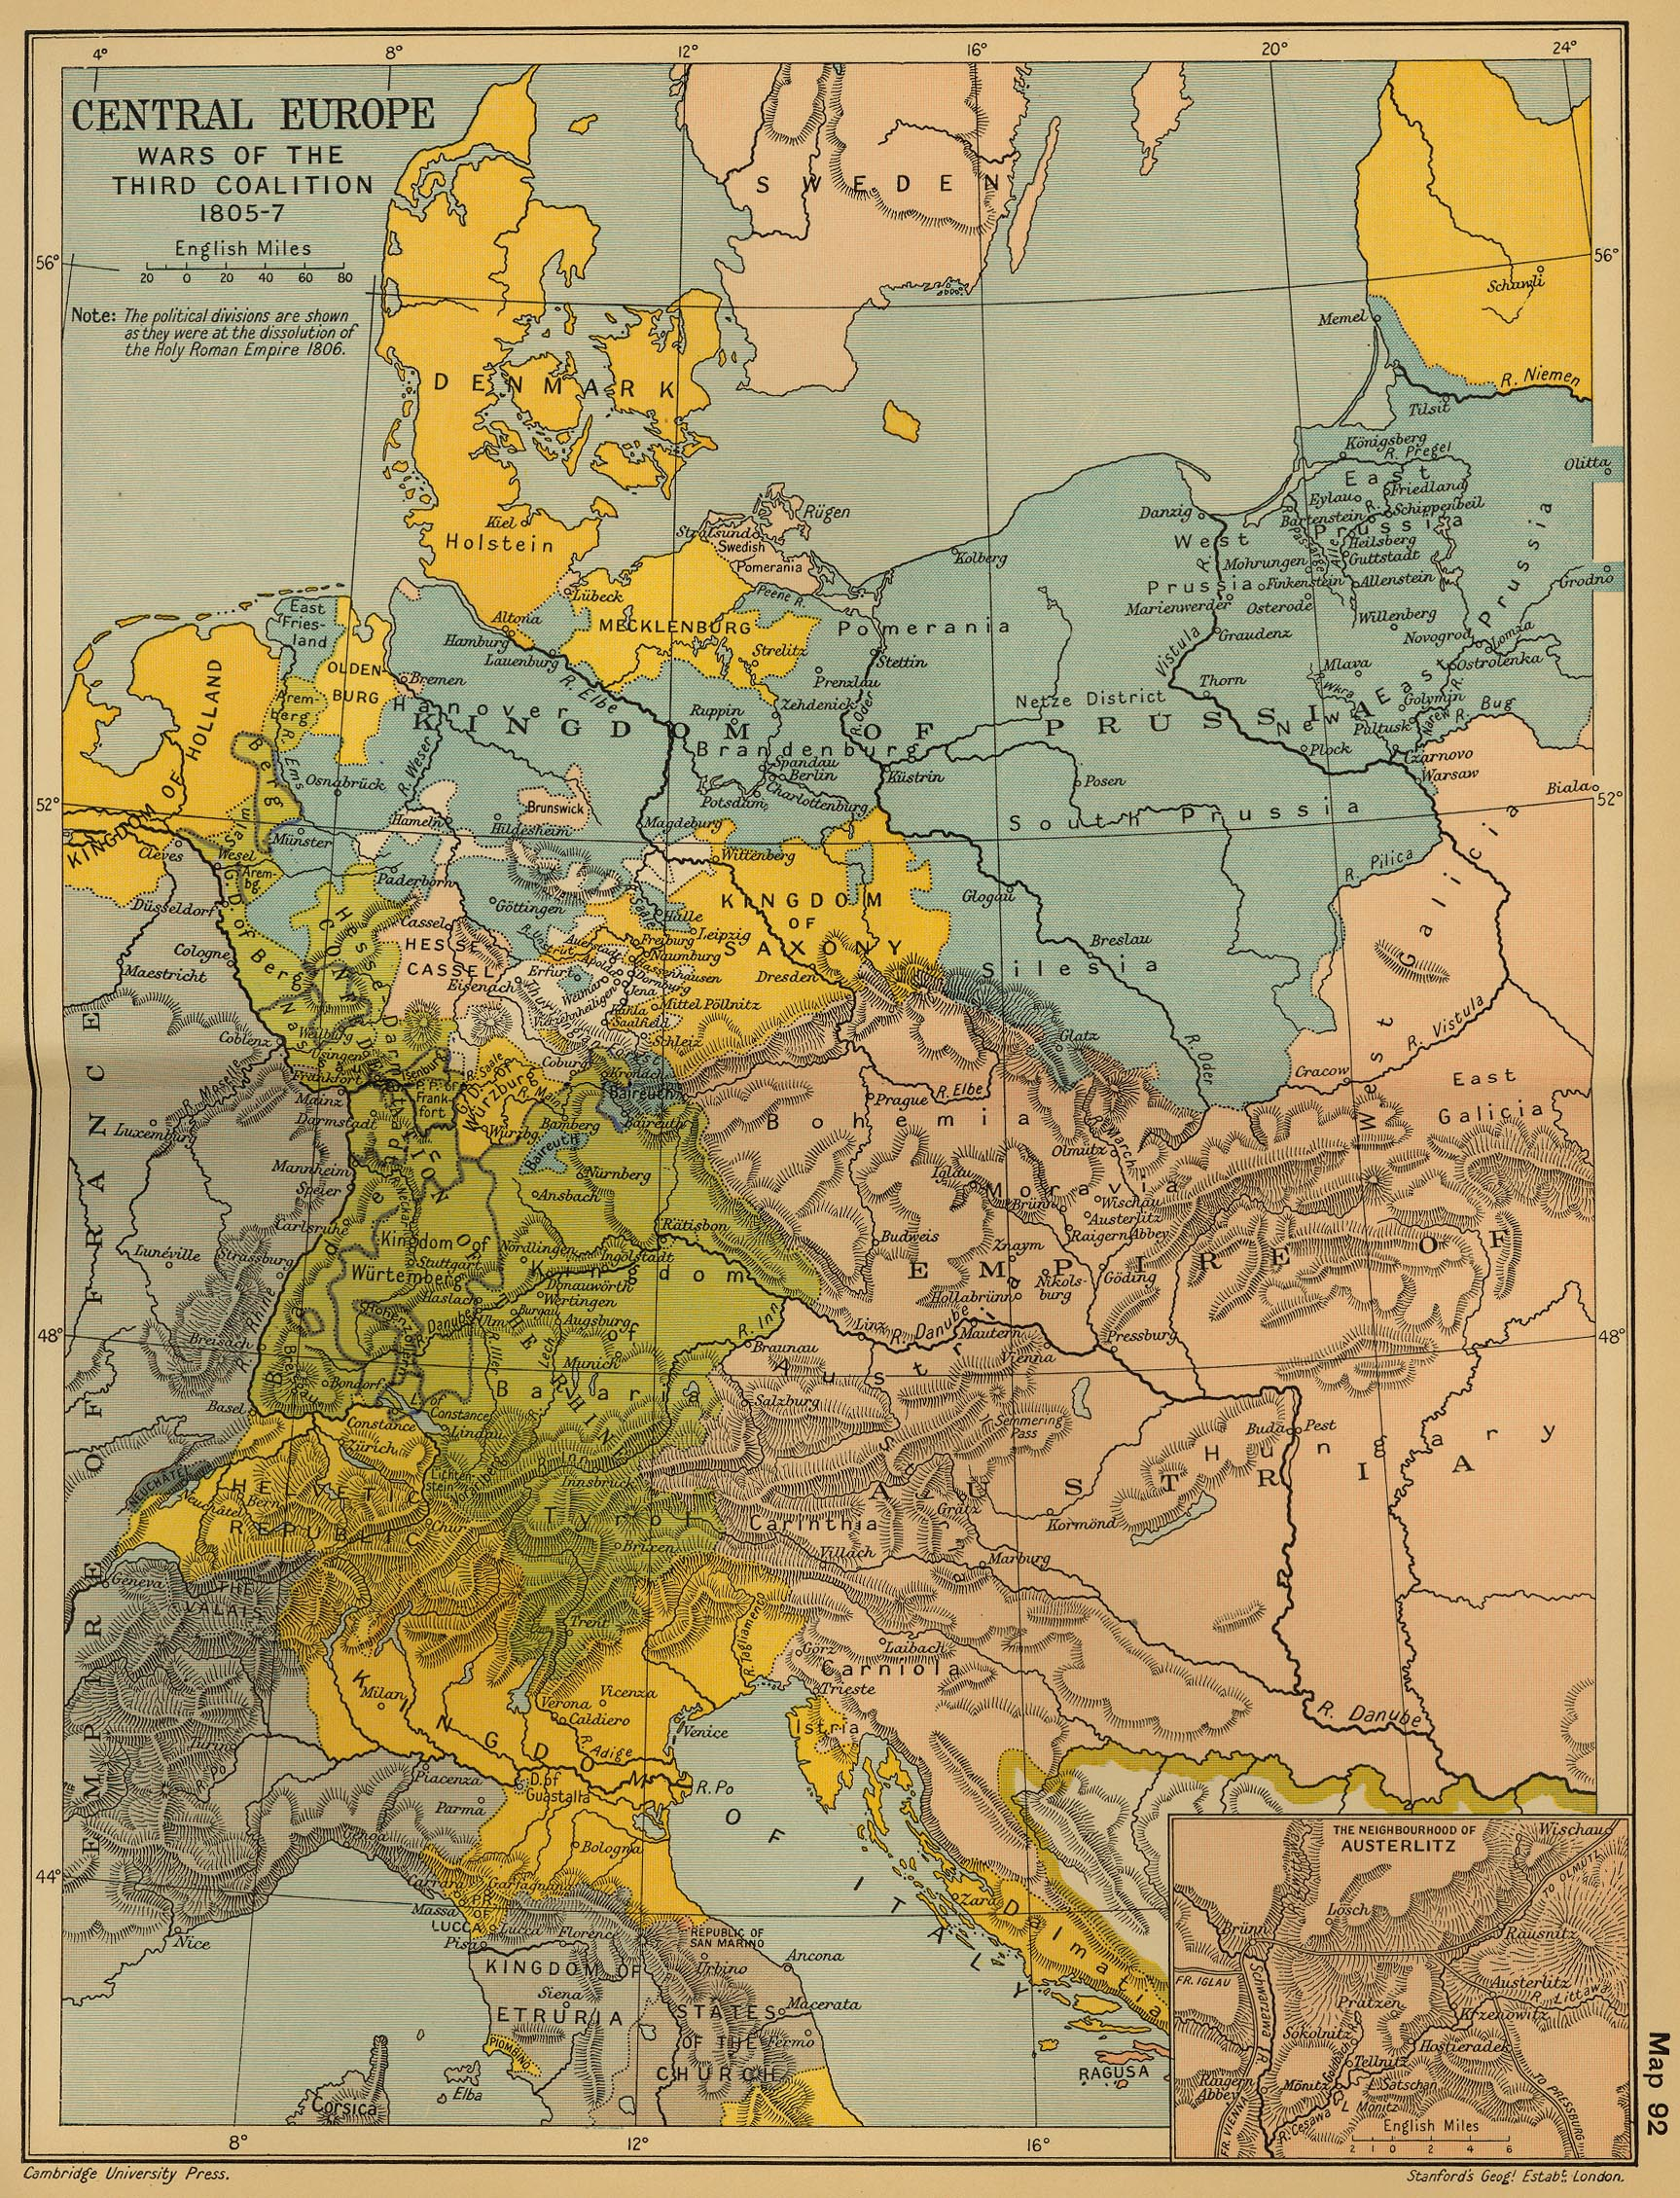 central europe wars of the third coalition 1805 1807